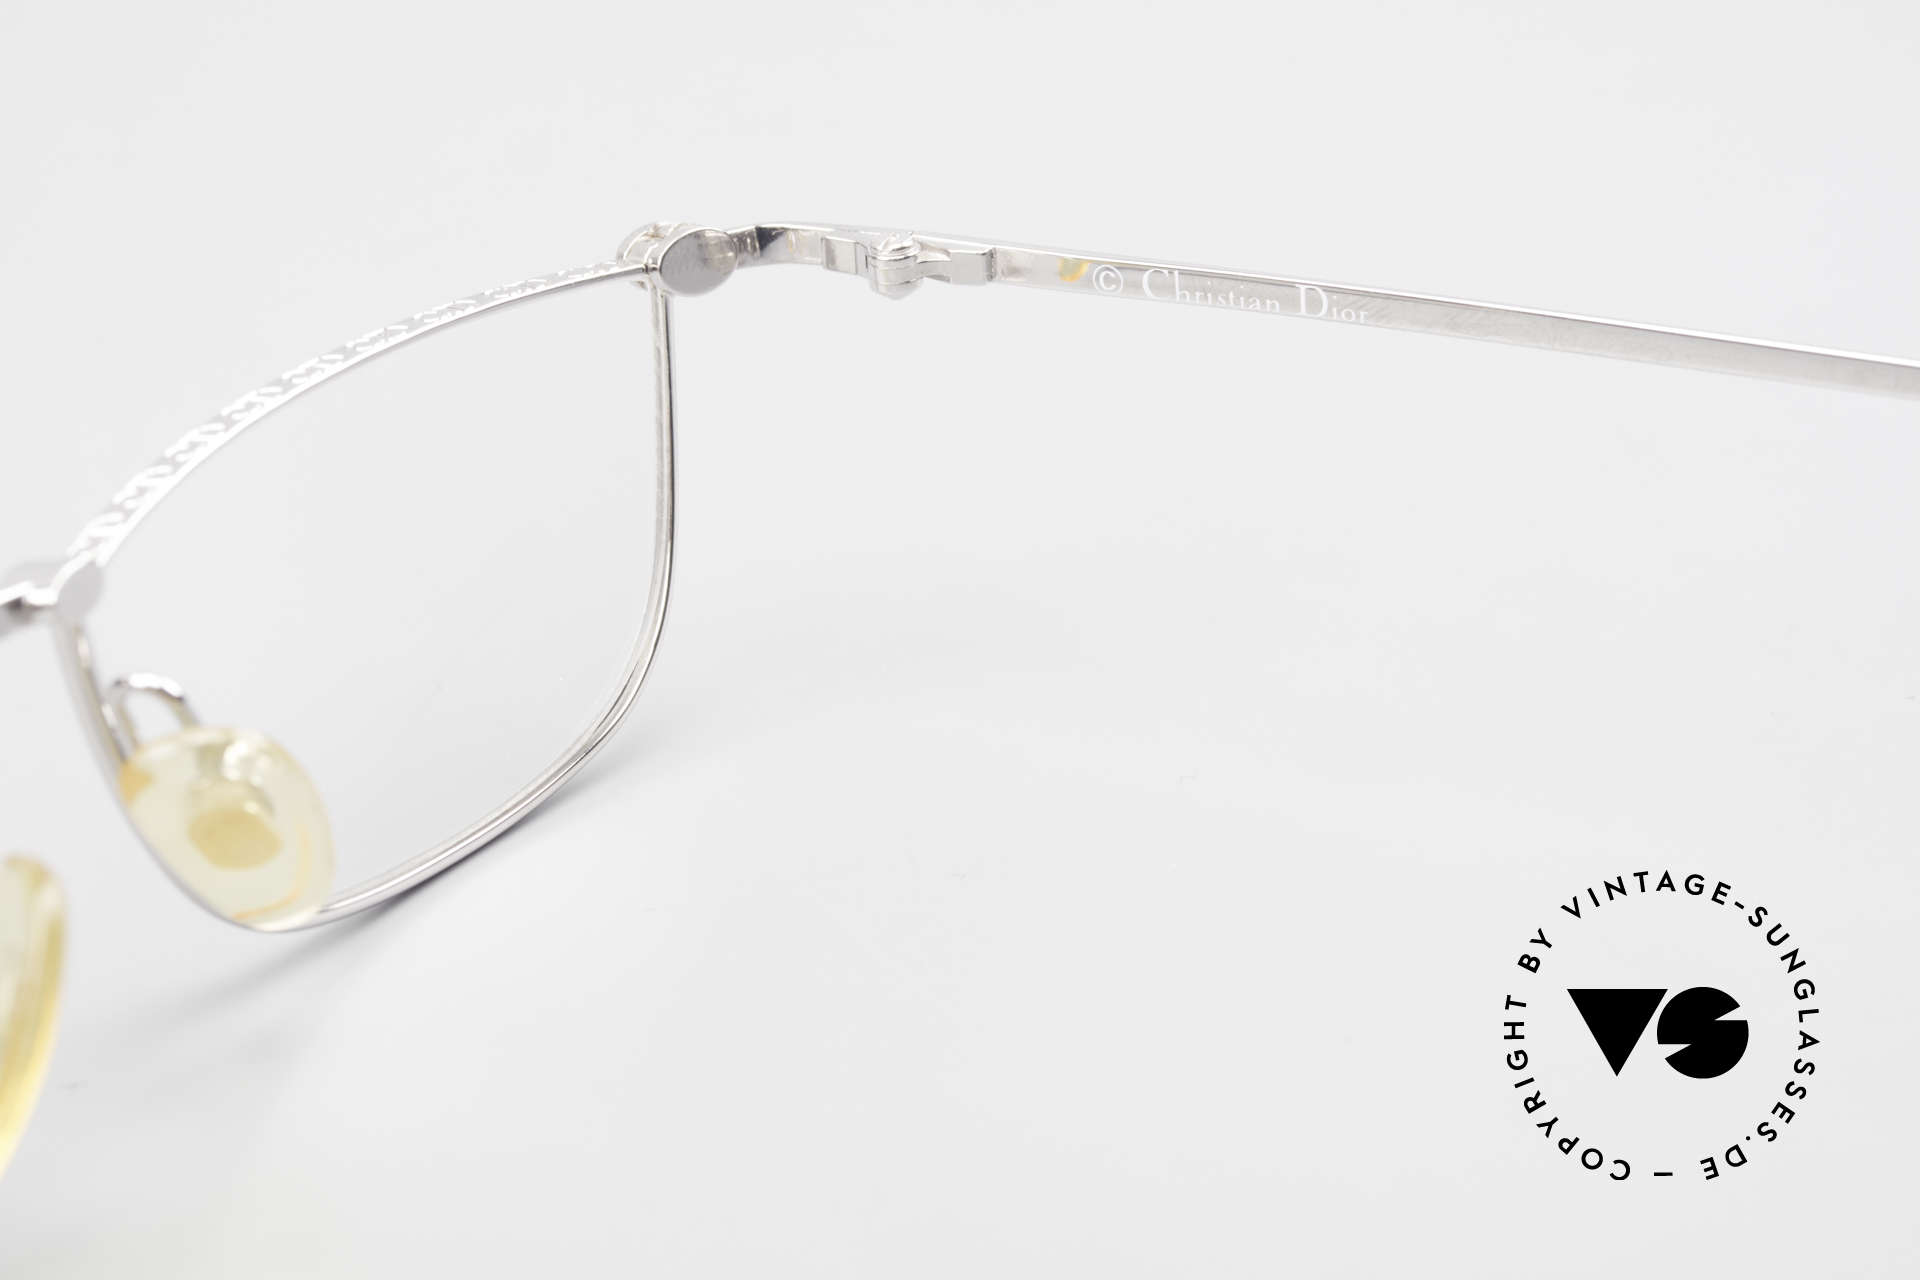 Christian Dior 2943 Designer Reading Glasses 90's, the DEMO lenses can be replaced with optical lenses, Made for Men and Women